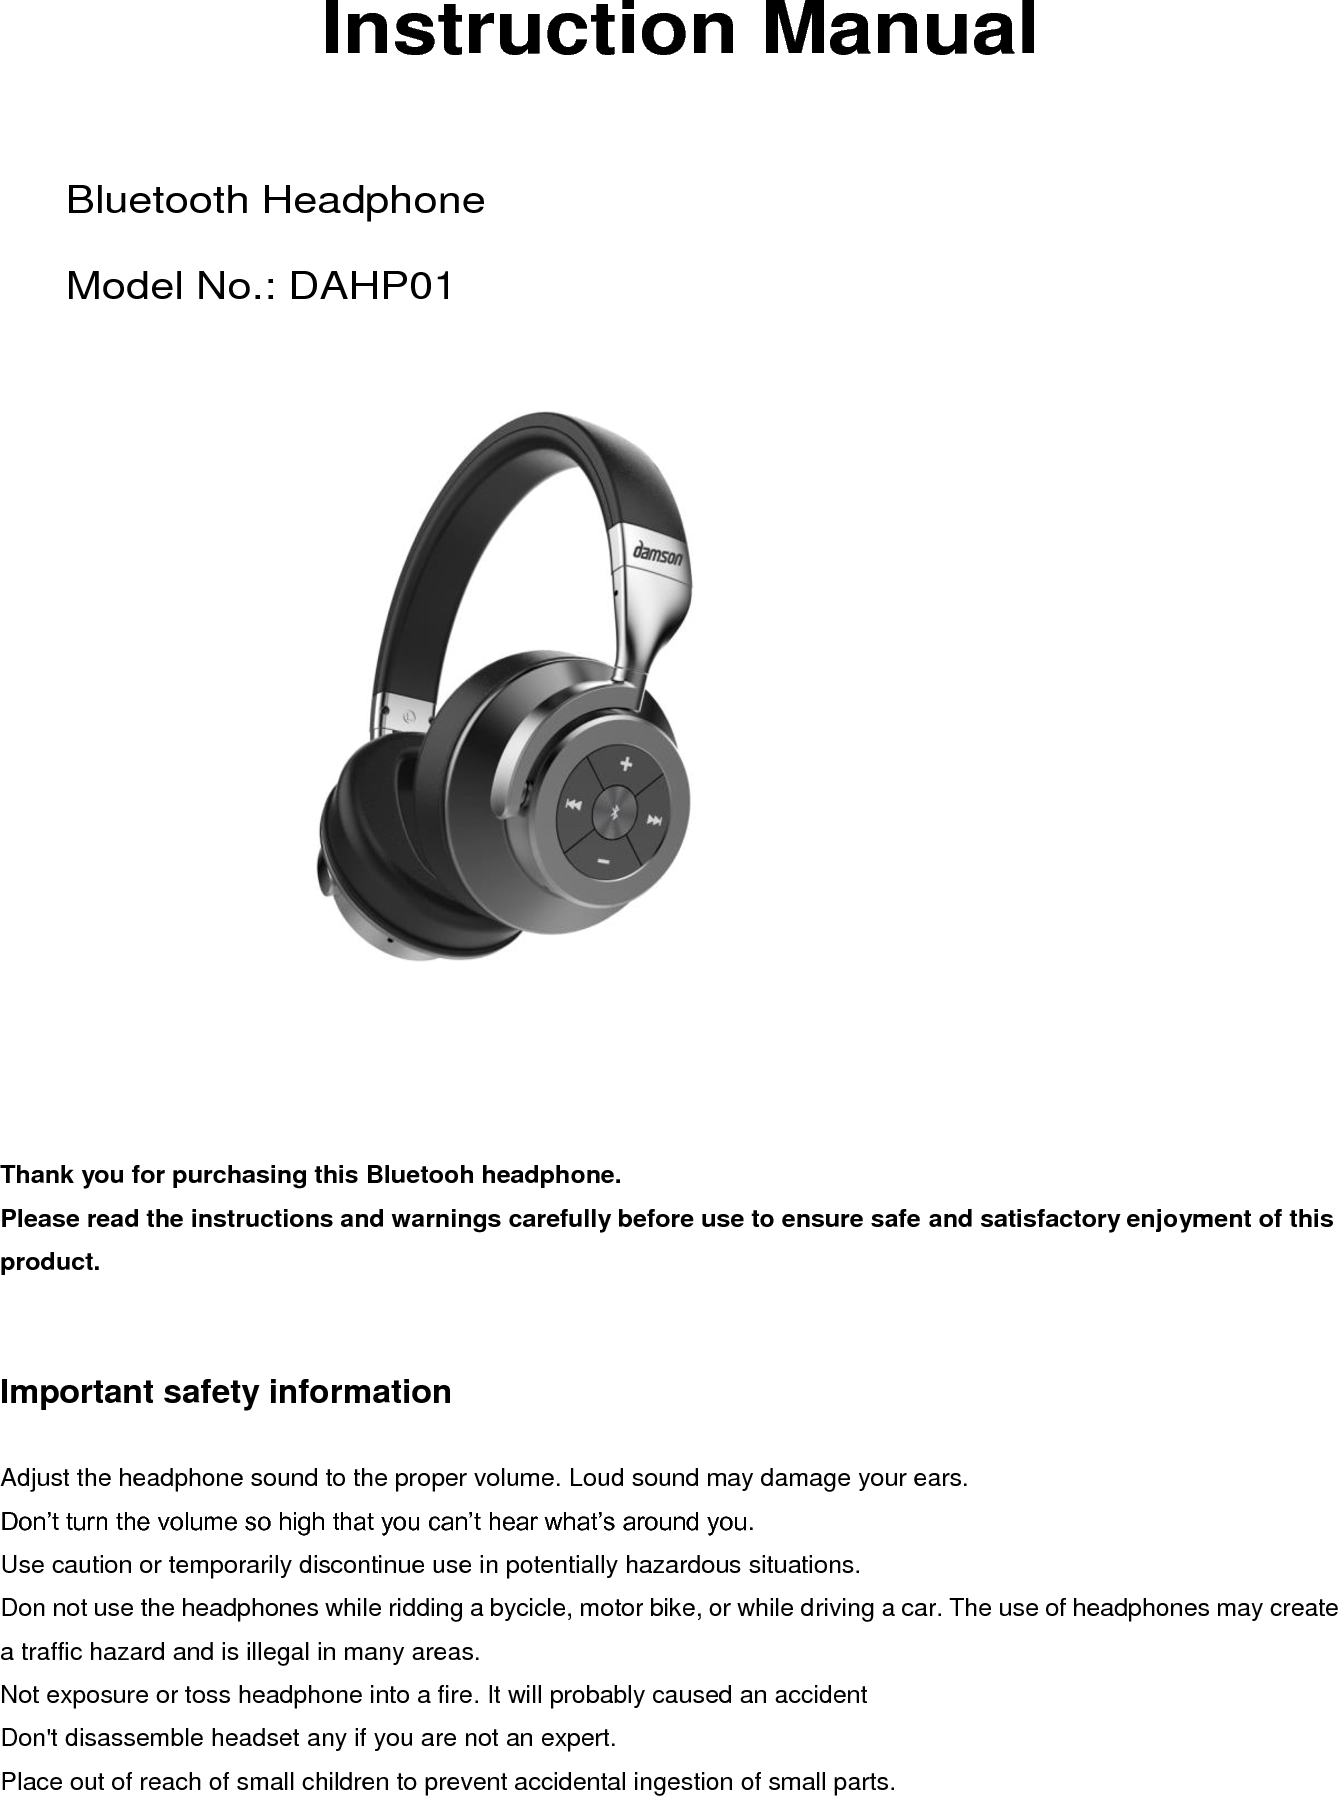 ihip bluetooth headphones user manual